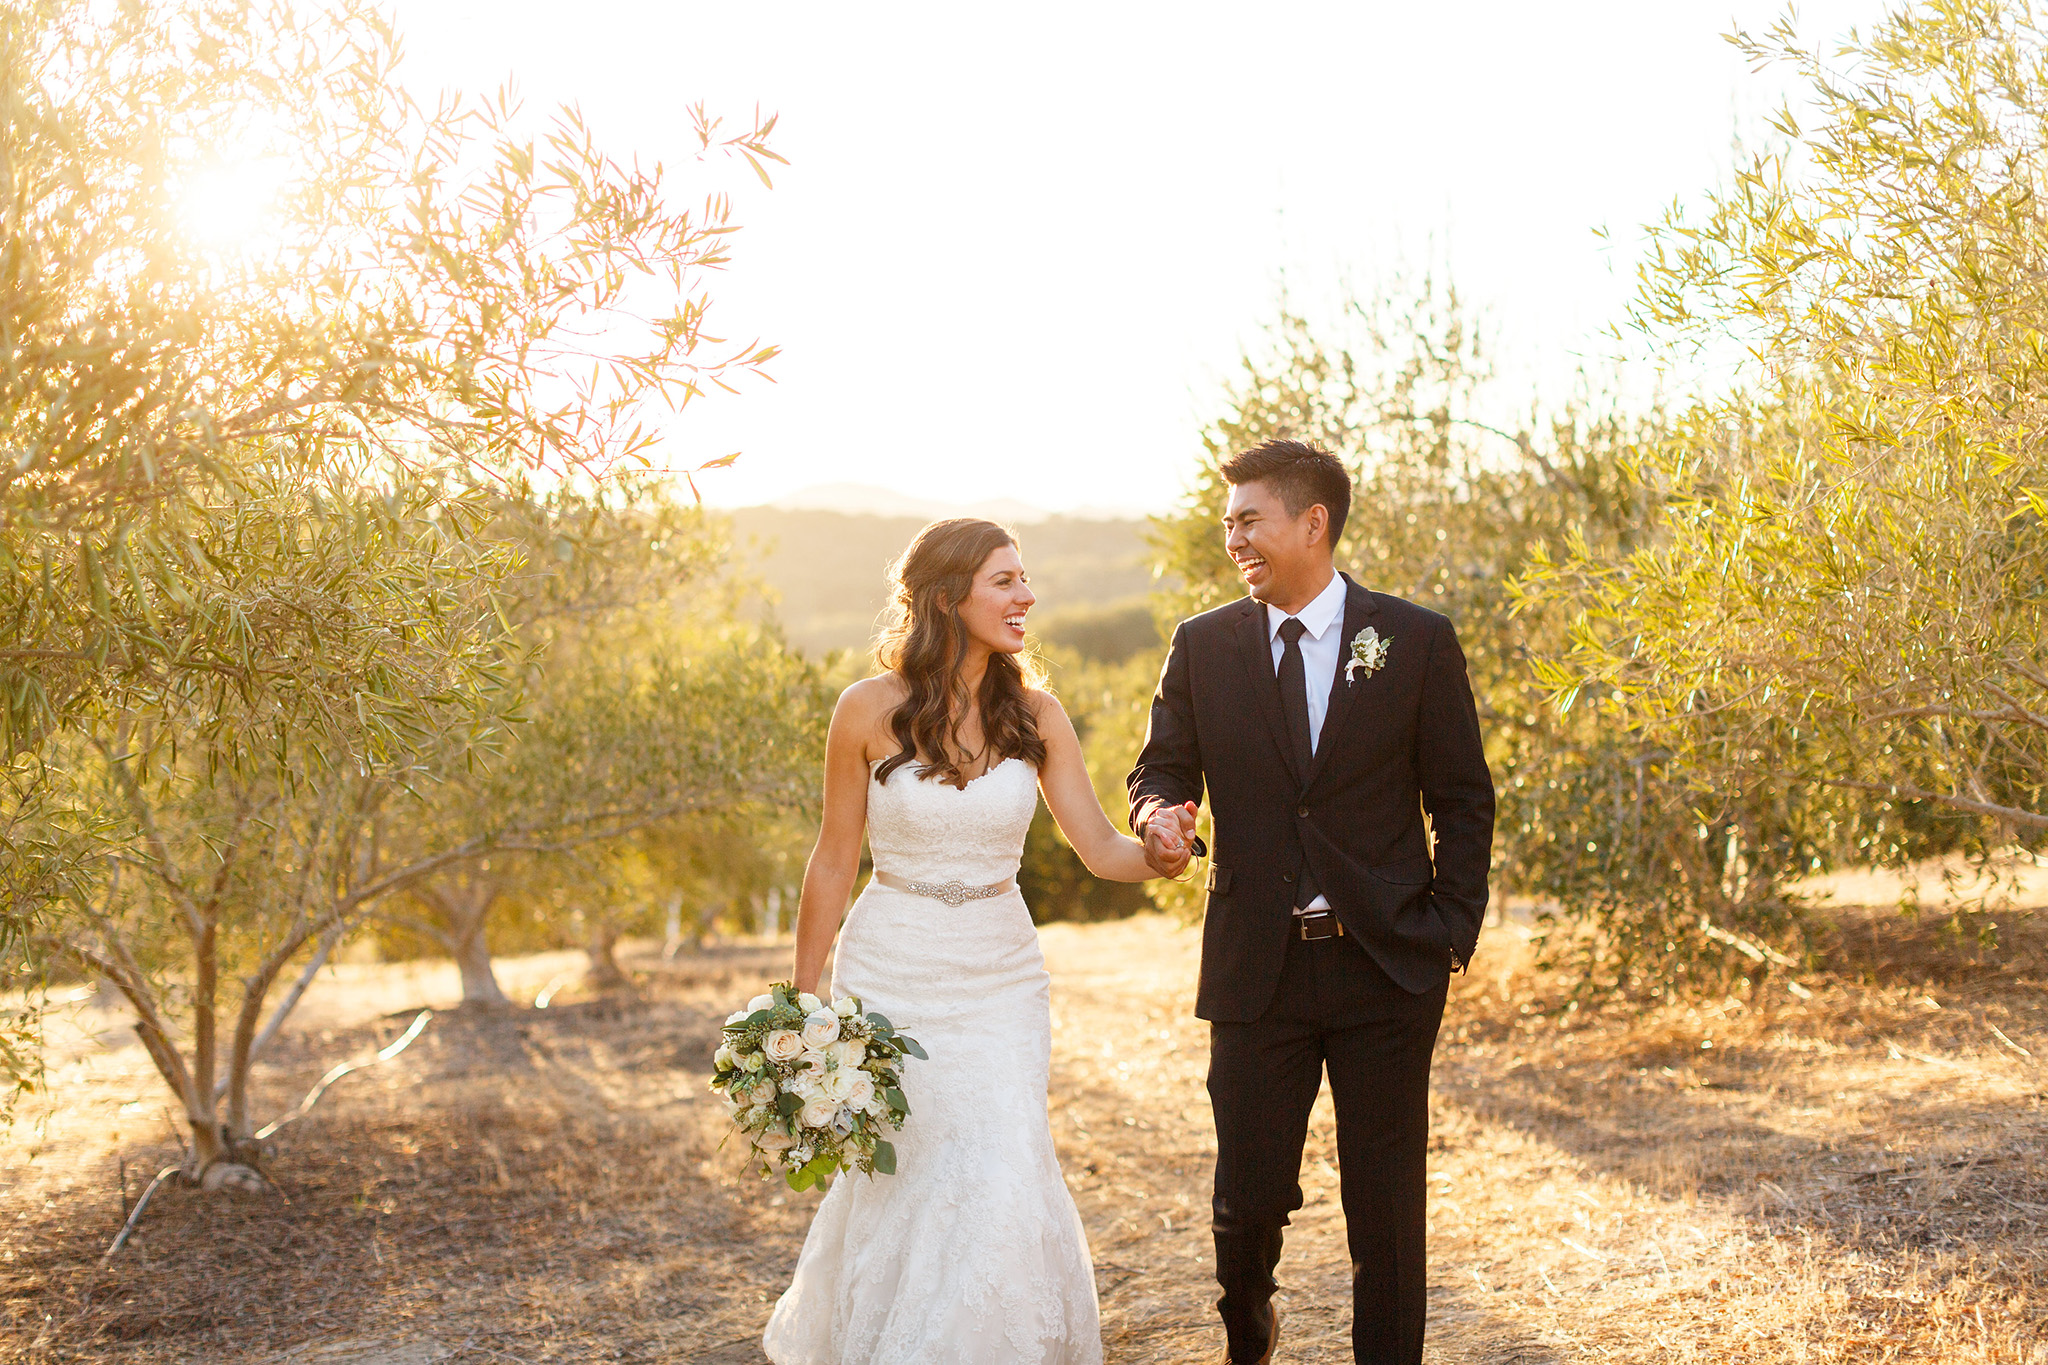 Bride and groom laughing during sunset wedding photos at Tiber Canyon Ranch wedding